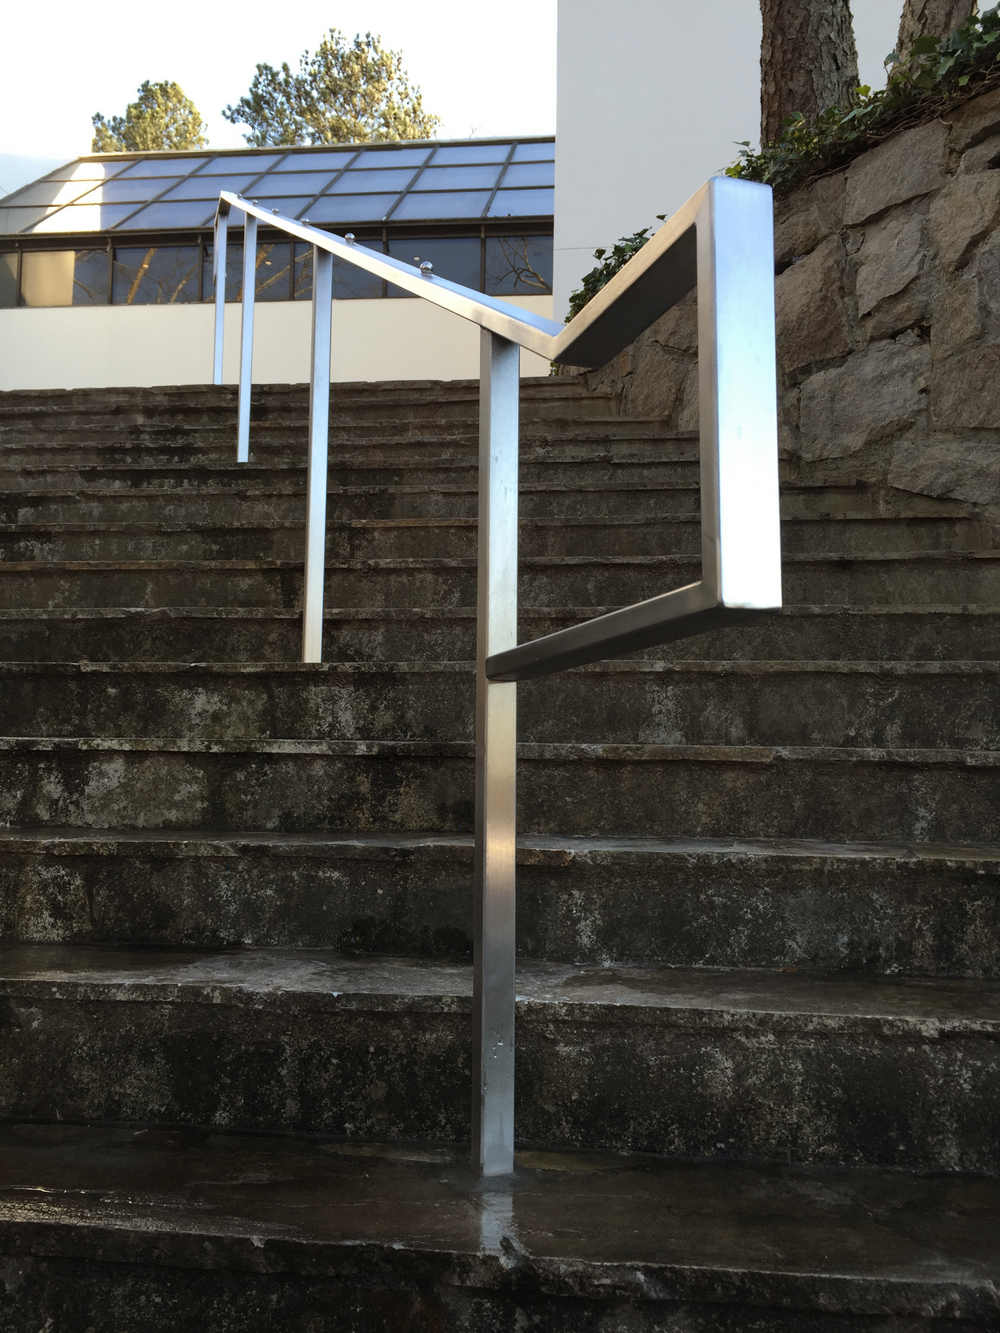 Stainless Hand Rail with Skateboarding Deterrents